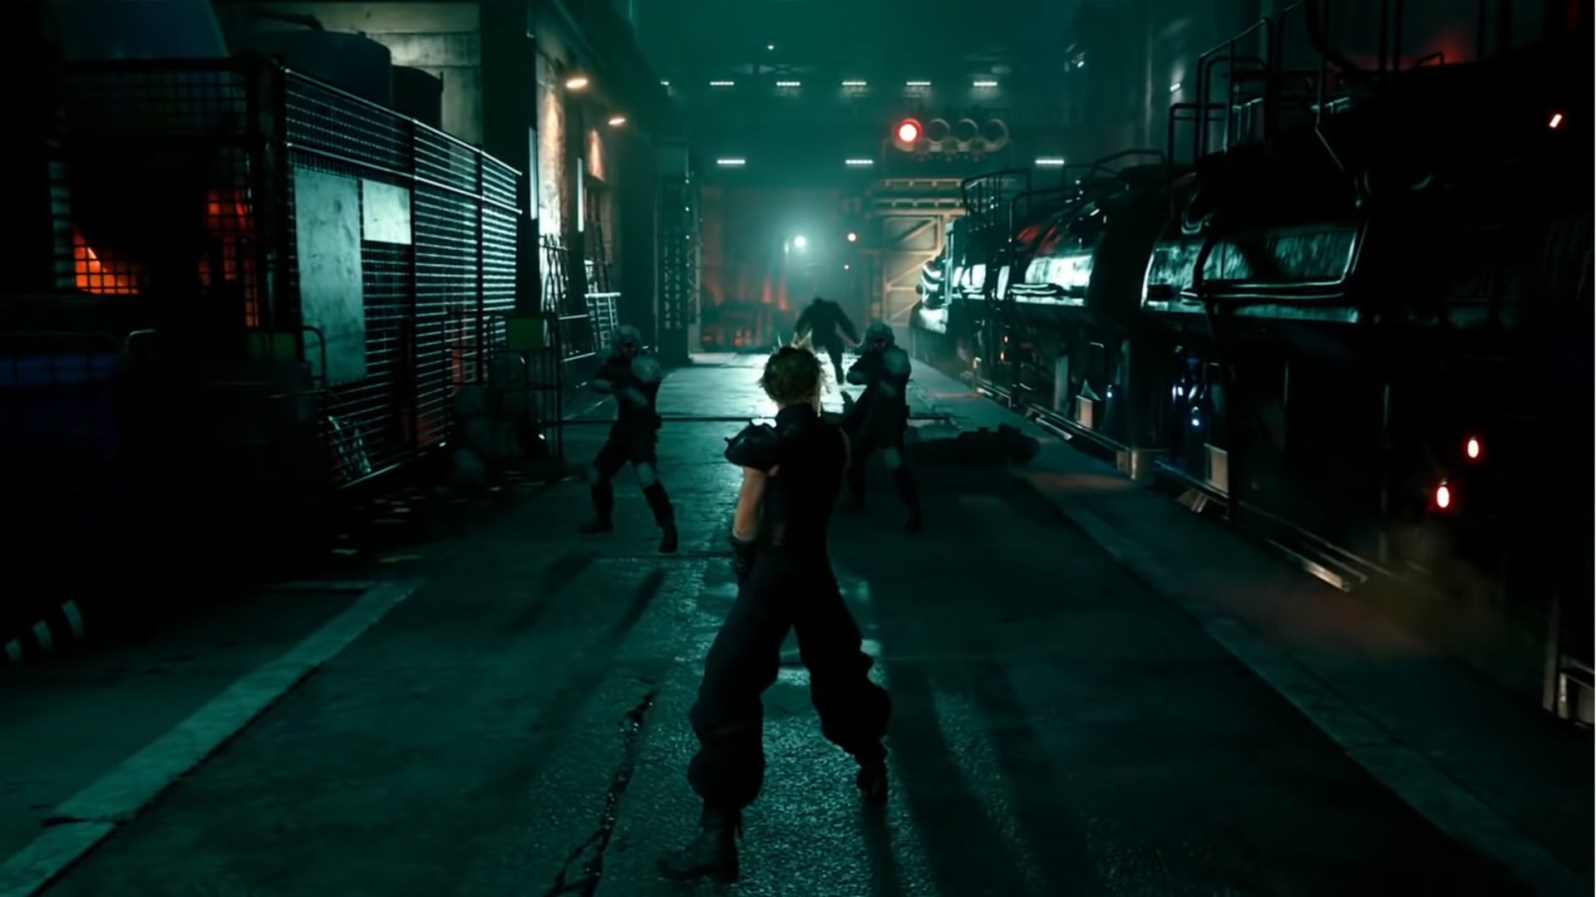 Quelle: Square Enix - Final Fantasy 7 Remake (Zugszene)